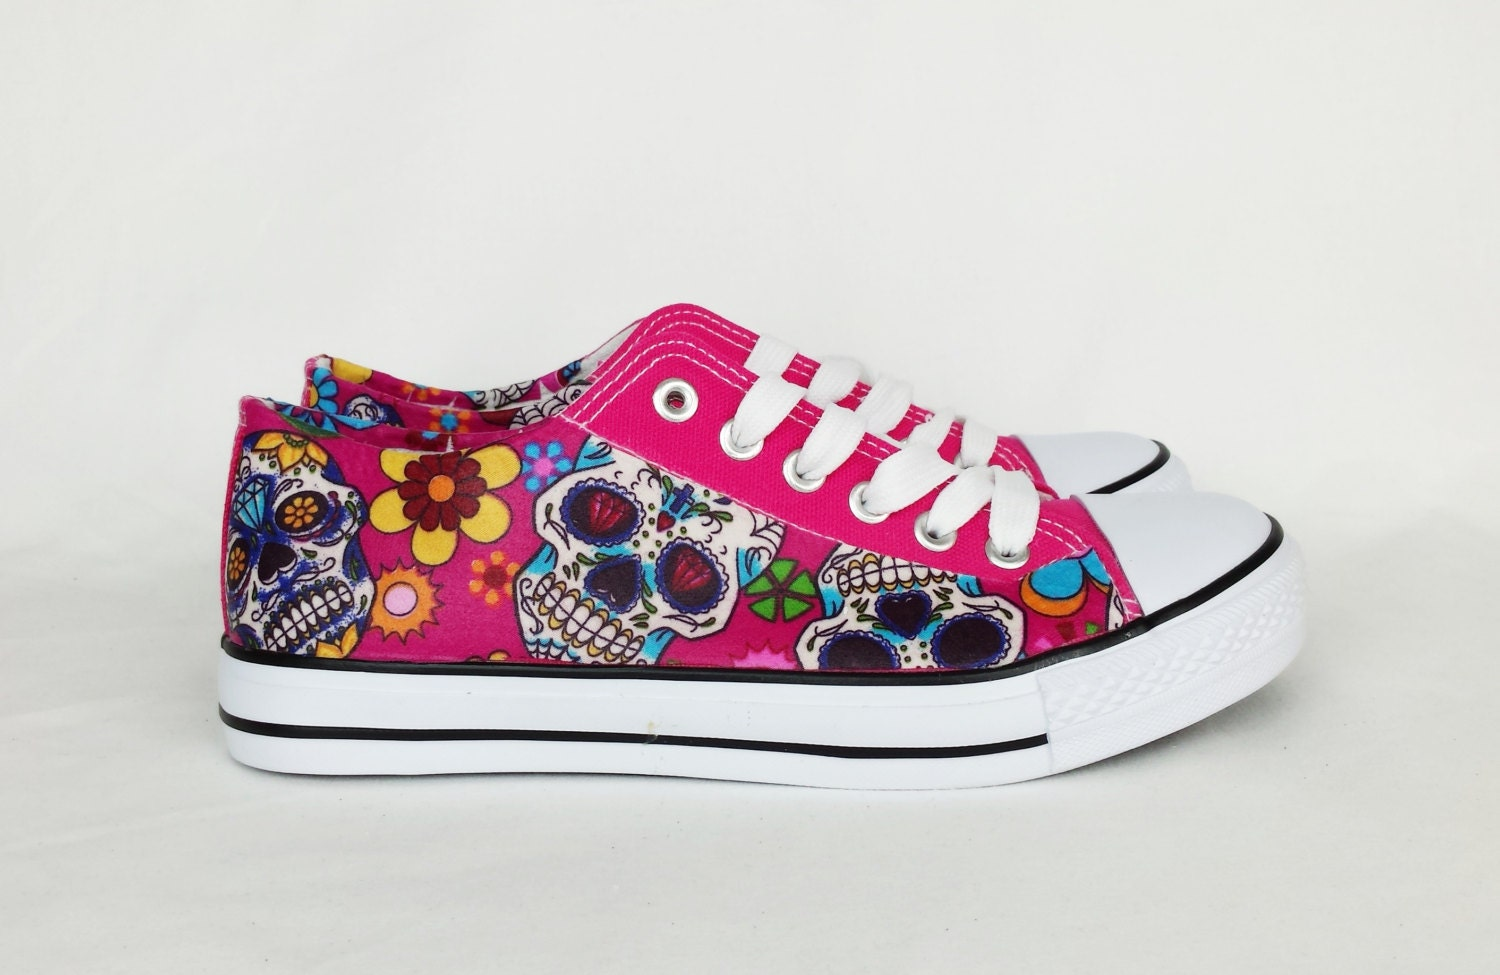 Day of the dead day of the dead shoes custom shoes women